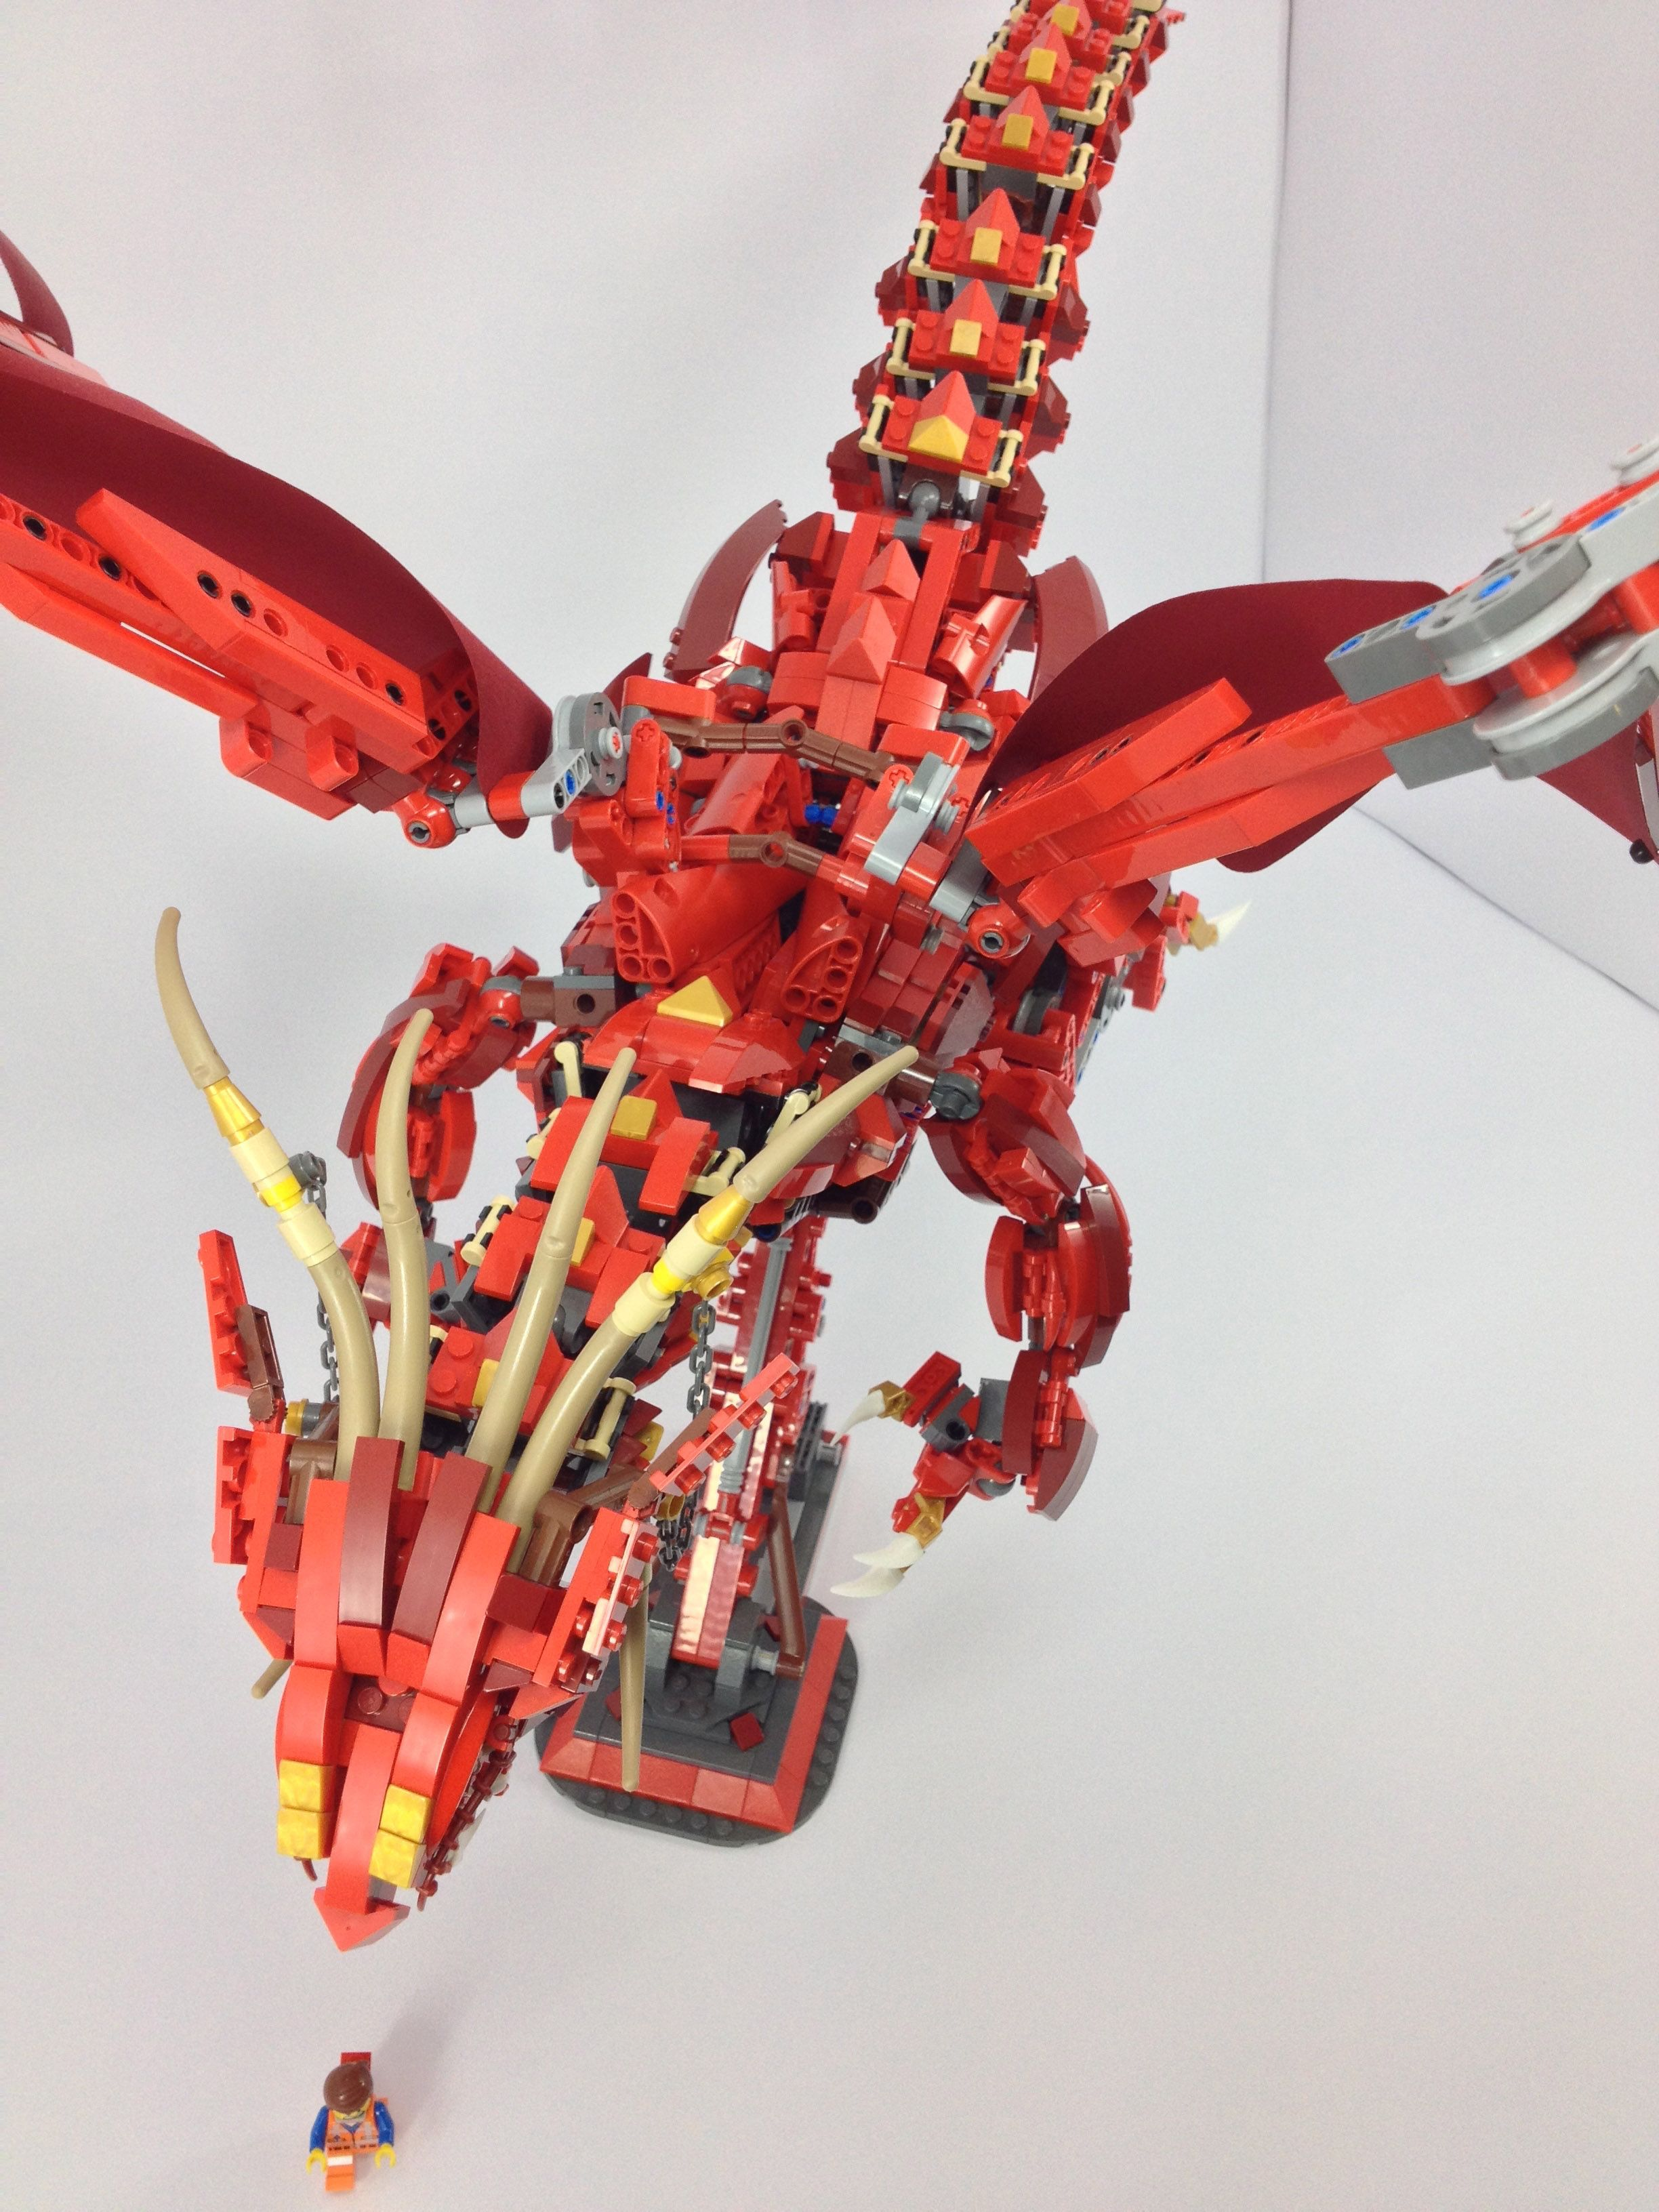 how to build a simple lego dragon